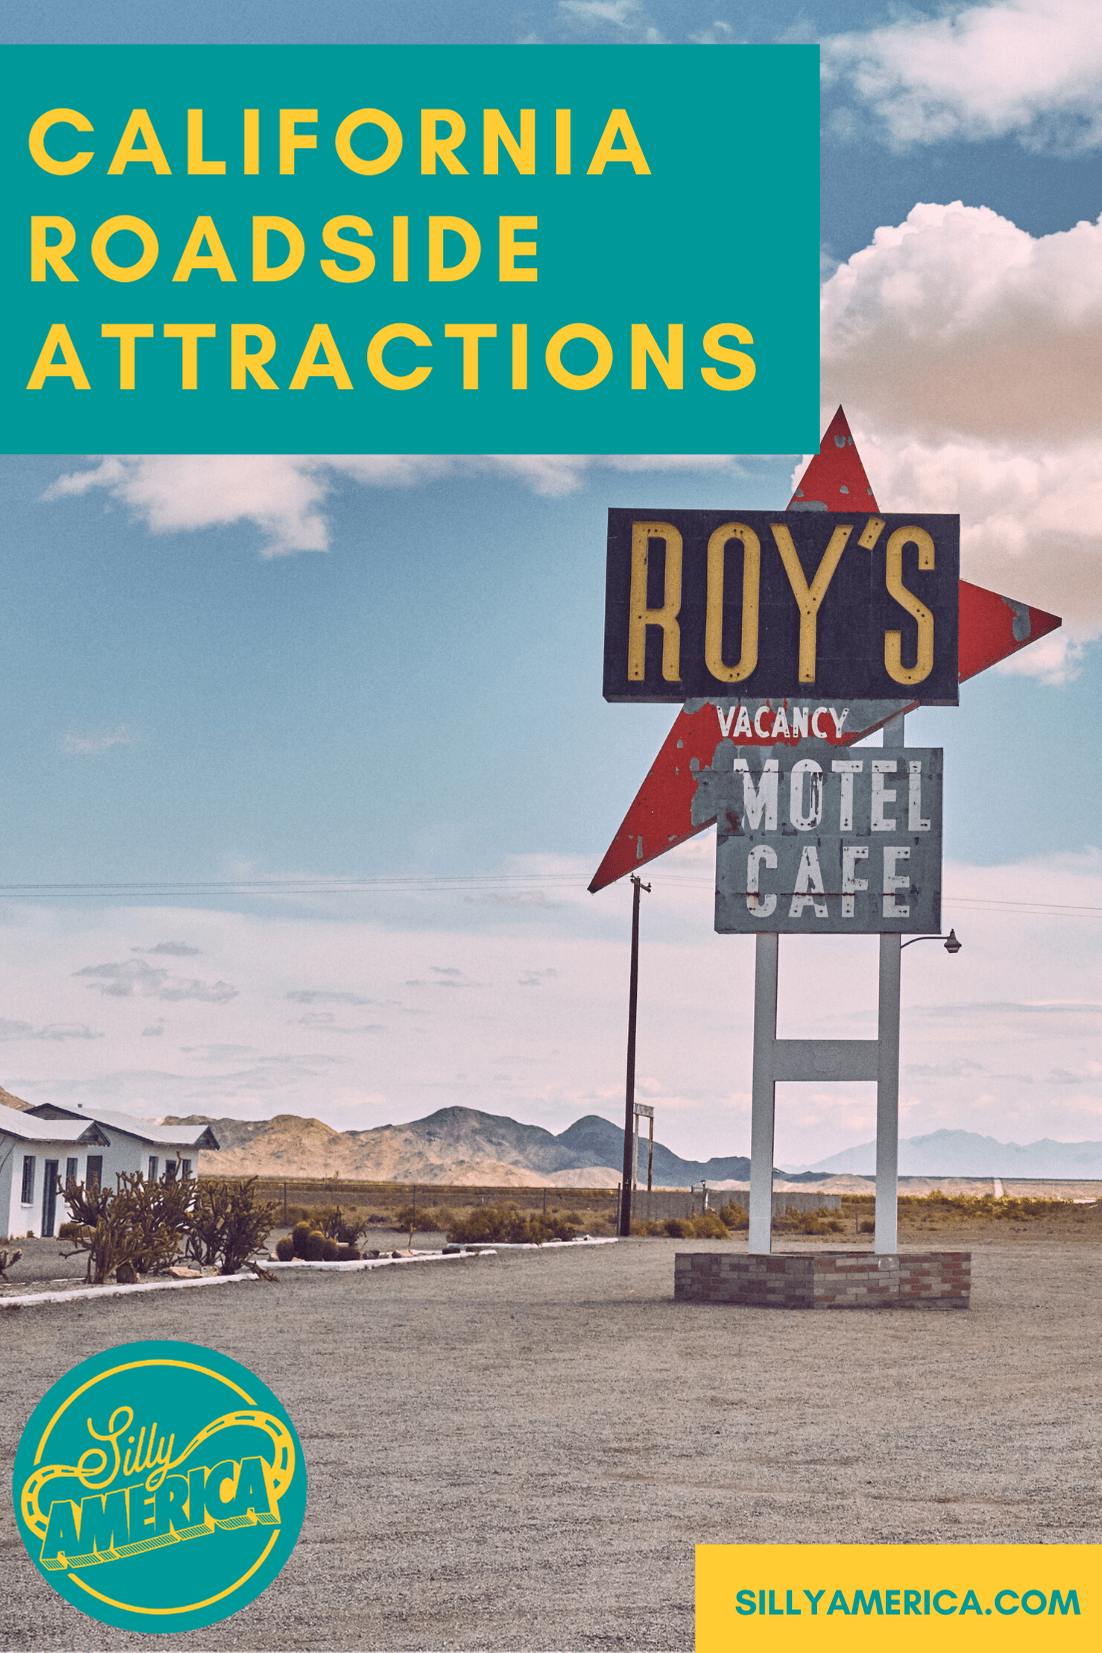 The best California roadside attractions to visit on a California road trip with kids or adults or a weekend getaway. Ideas for roadside oddities to add to your travel bucket list or itinerary! #California #CaliforniaRoadsideAttractions #CaliforniaRoadsideAttraction #RoadsideAttraction #RoadsideAttractions #RoadTrip #CaliforniaRoadTrip #CaliforniaRoadTripItinerary #CaliforniaRoadTripStops ##CaliforniaRoadTripIdeas #CaliforniaRoadTripMap #CaliforniaBudgetRoadTrip #WeirdRoadsideAttractions